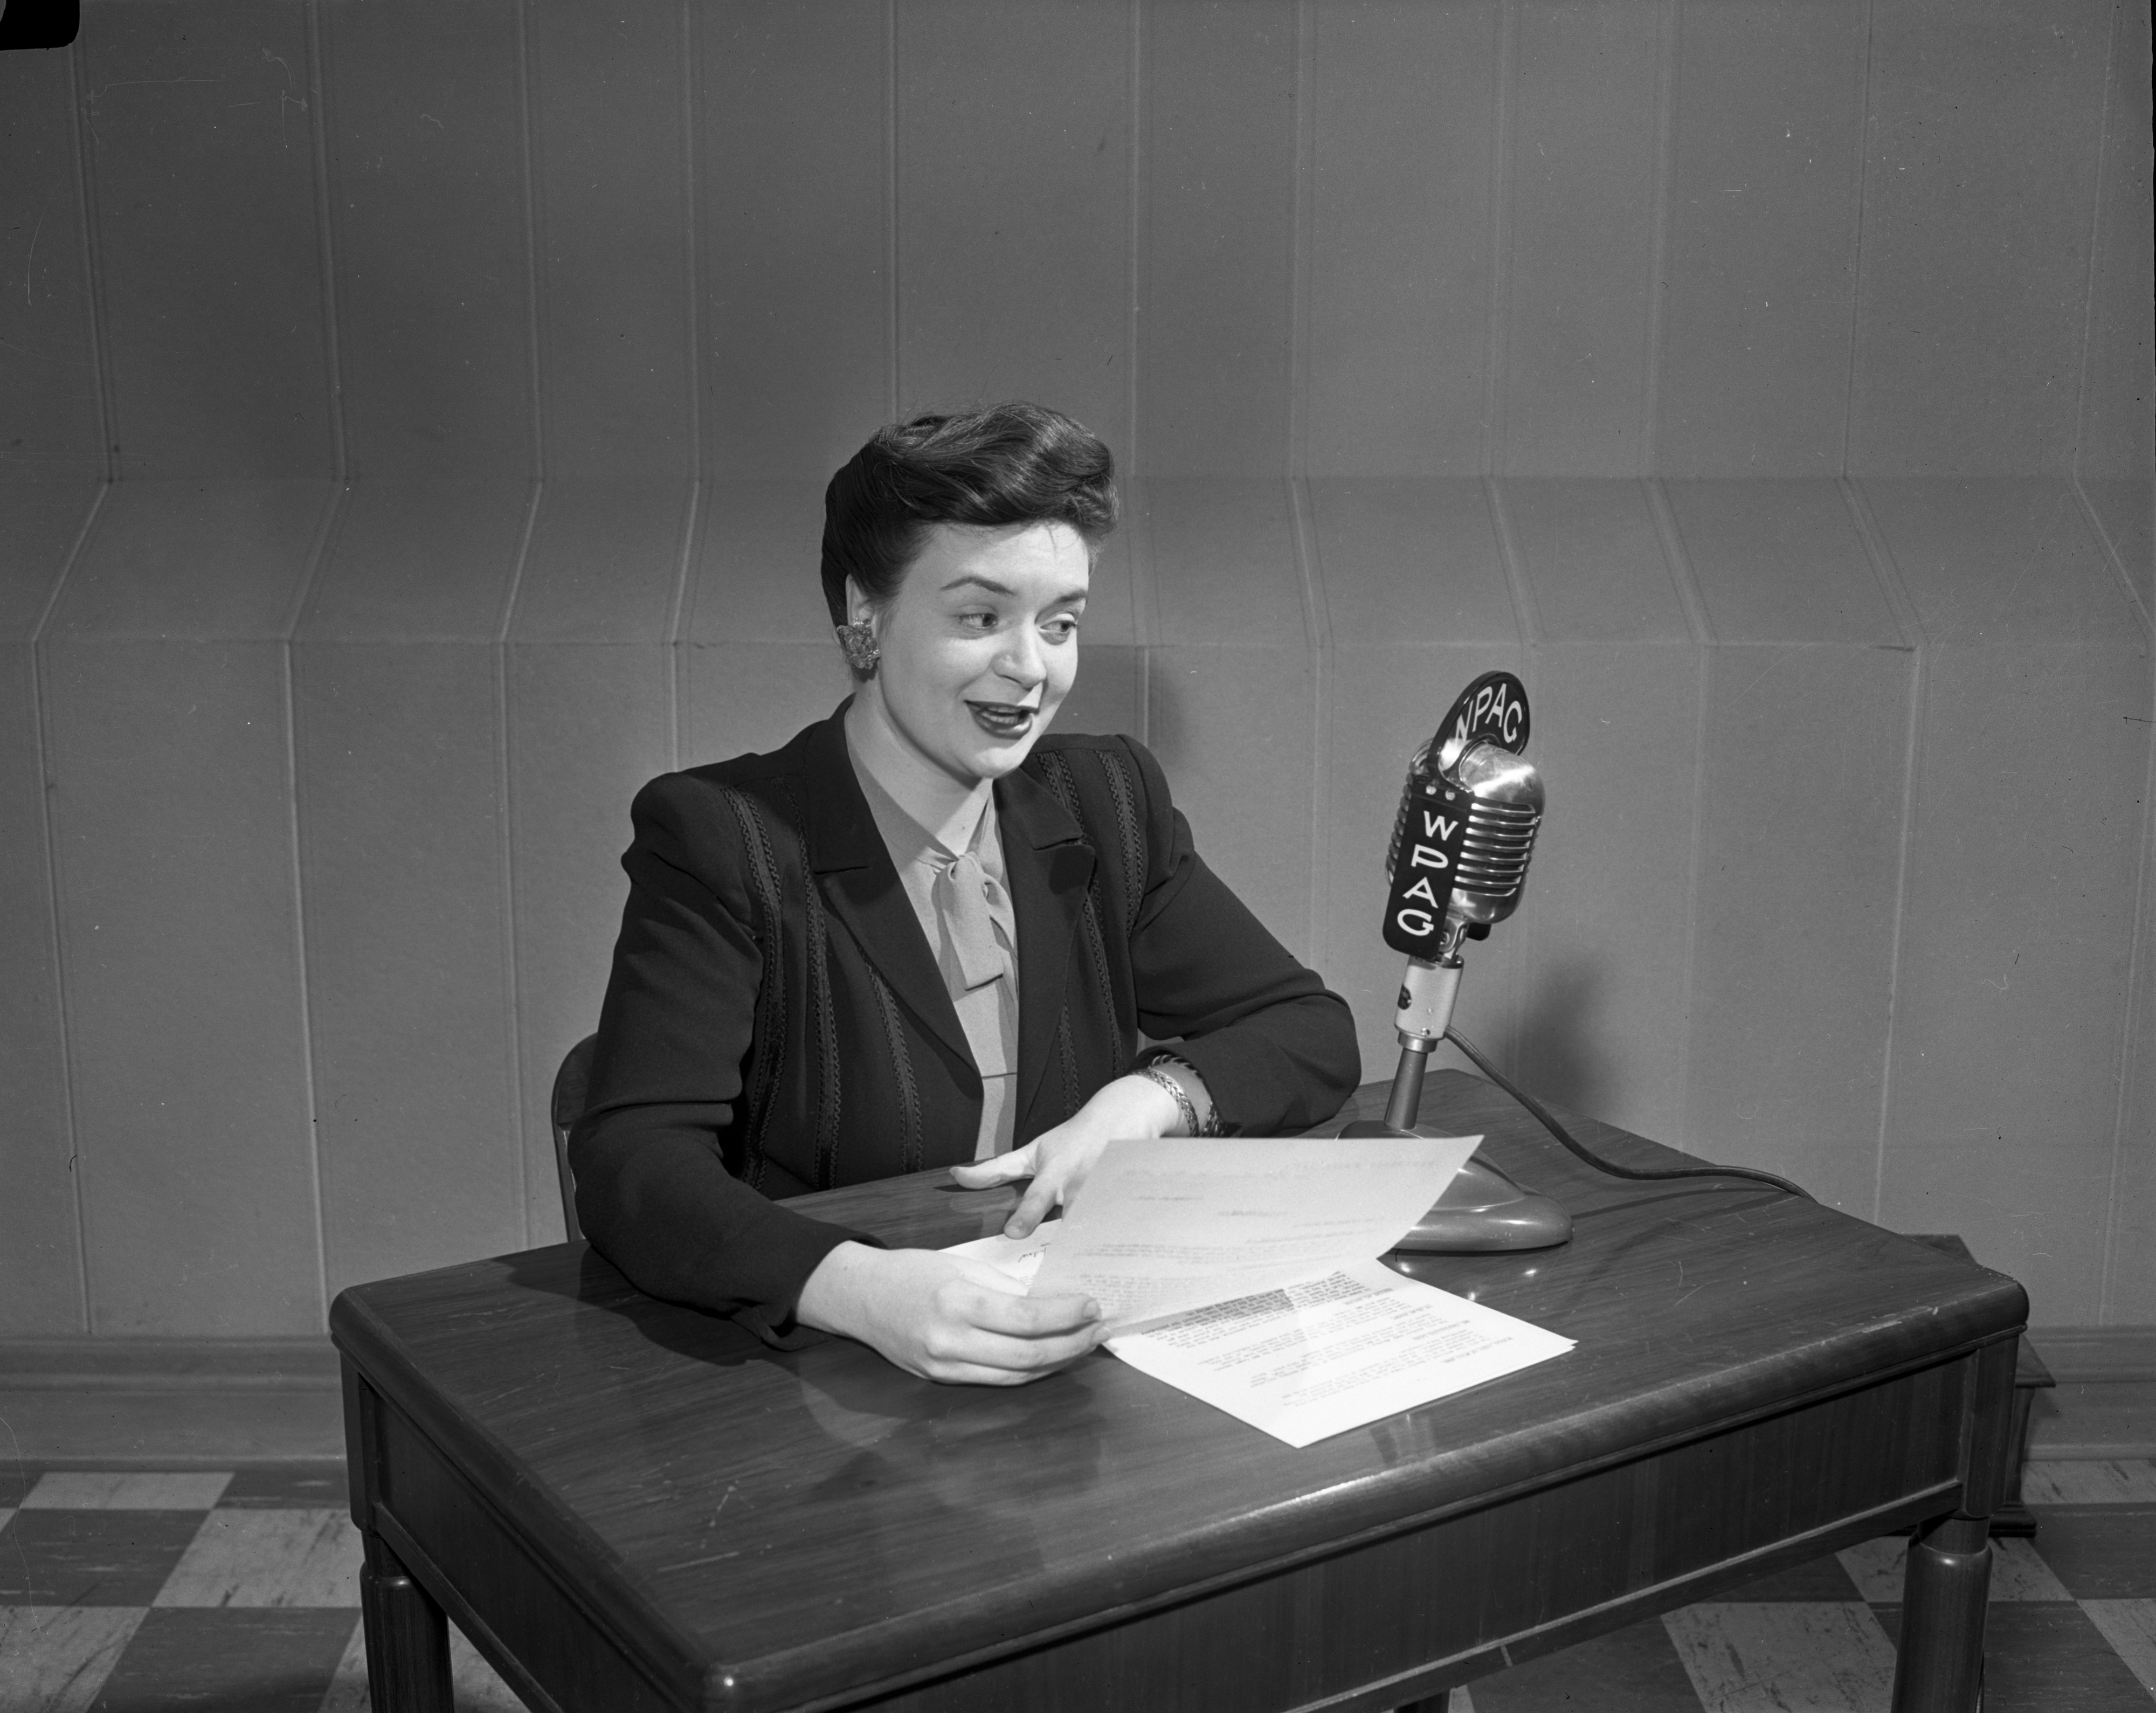 Broadcaster for WPAG radio, undated image